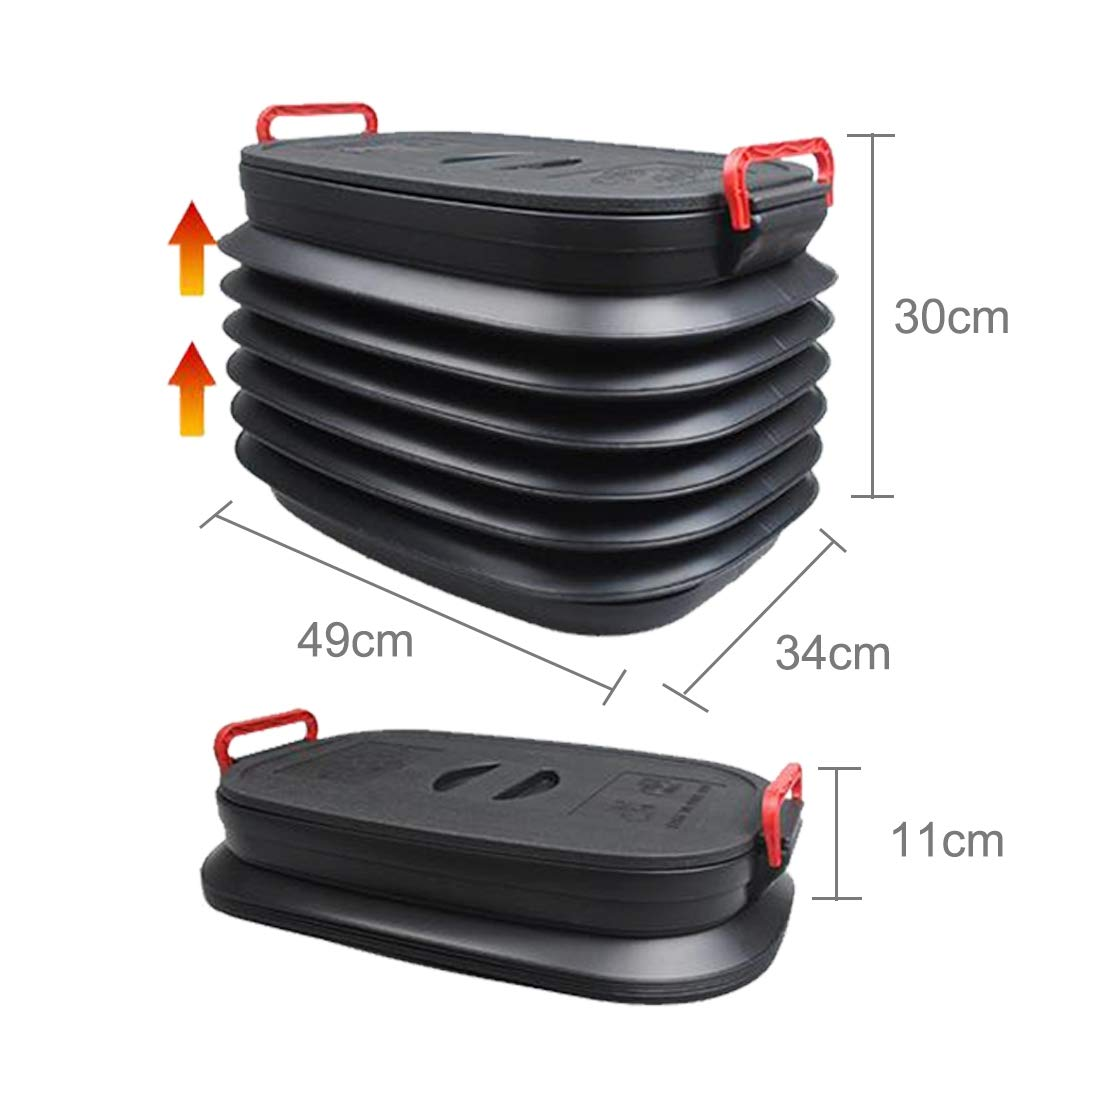 YKDY 37L Car Collapsible Plastic Organizer Bin with Lid for Camping and Outdoor